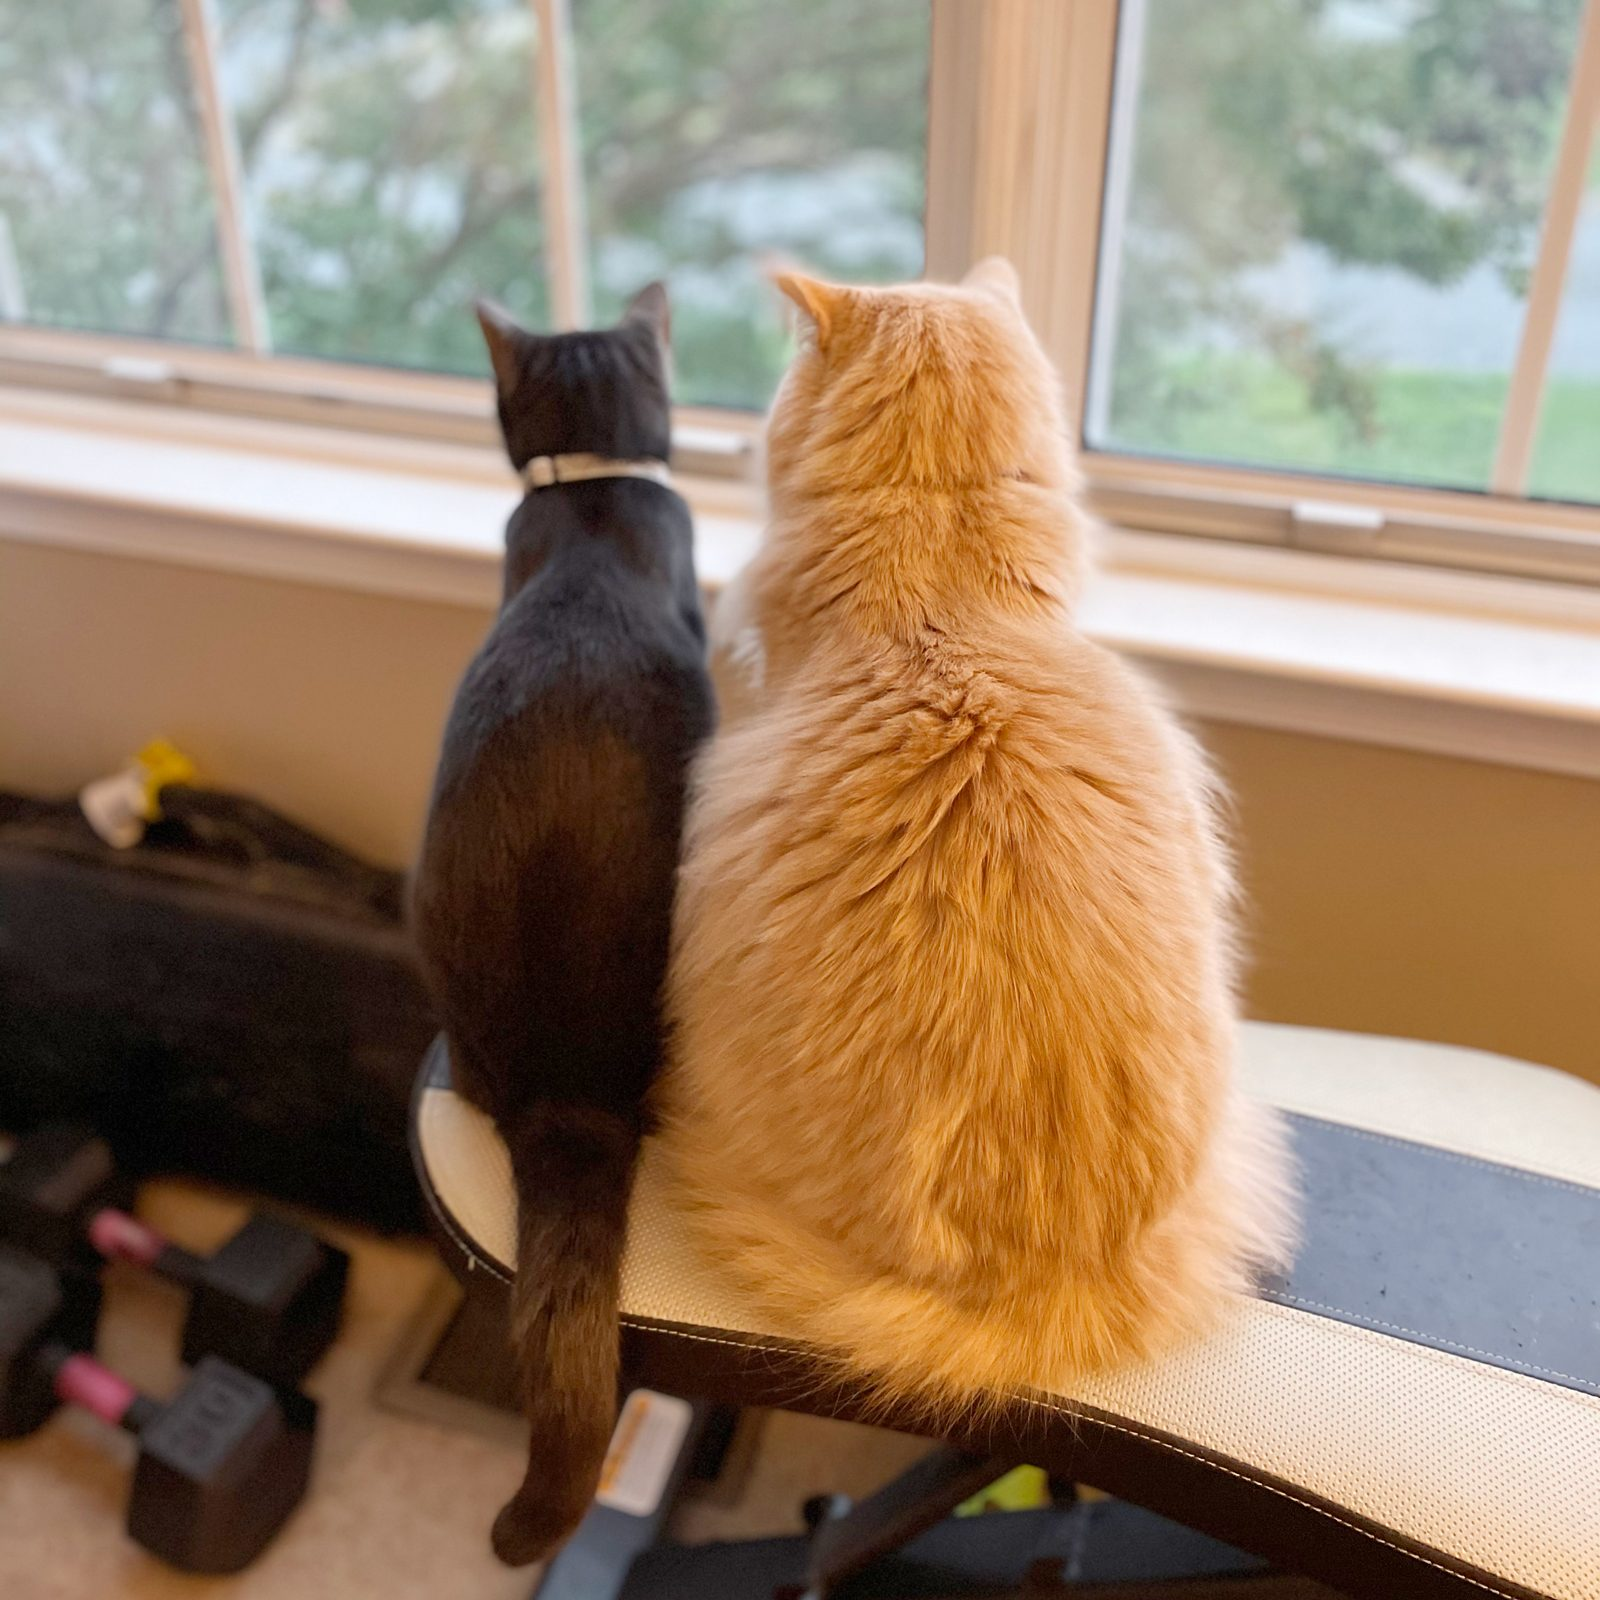 two cats sitting together; one is thin and dark, the other is large, fluffy, and orange